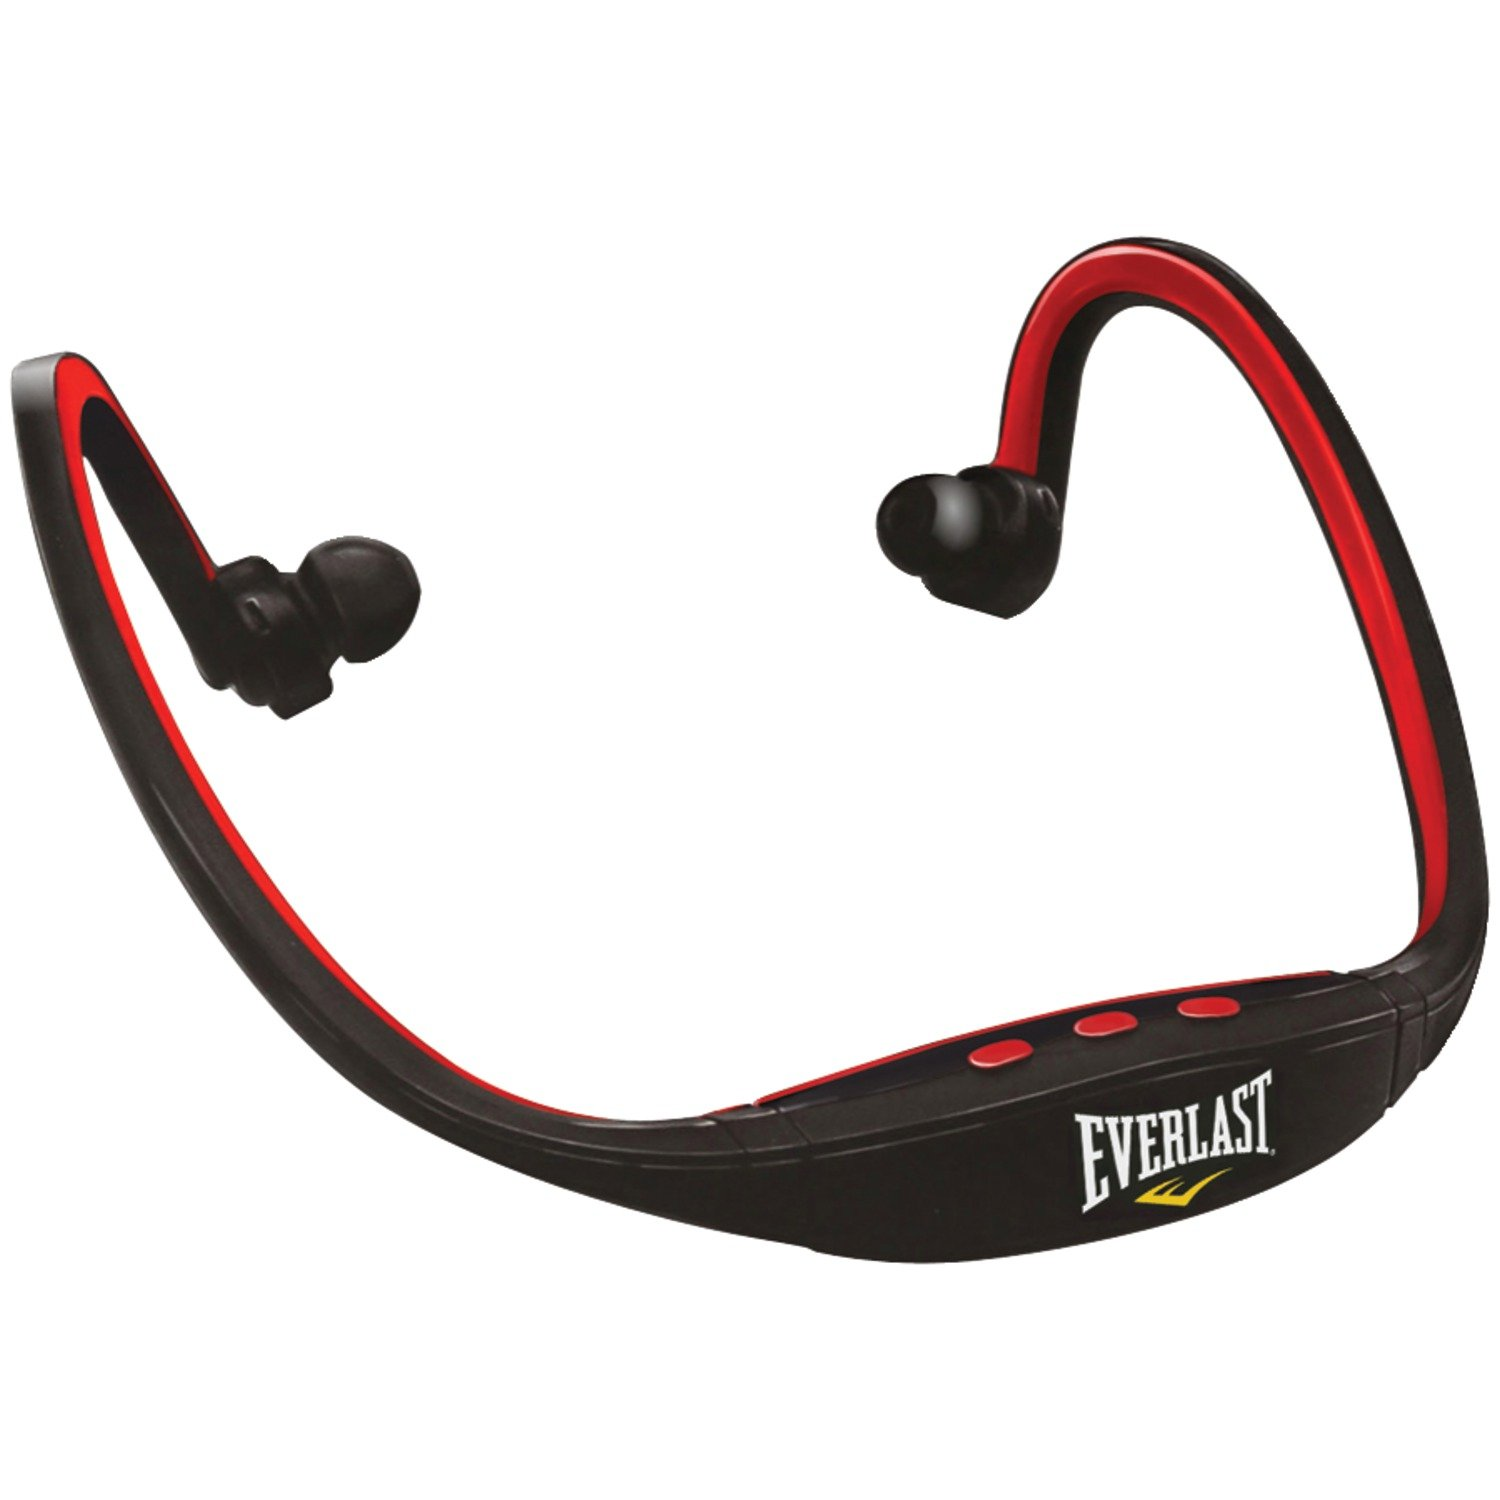 Everlast Head Rock Bluetooth Headphones With Microphone (red) EV6829